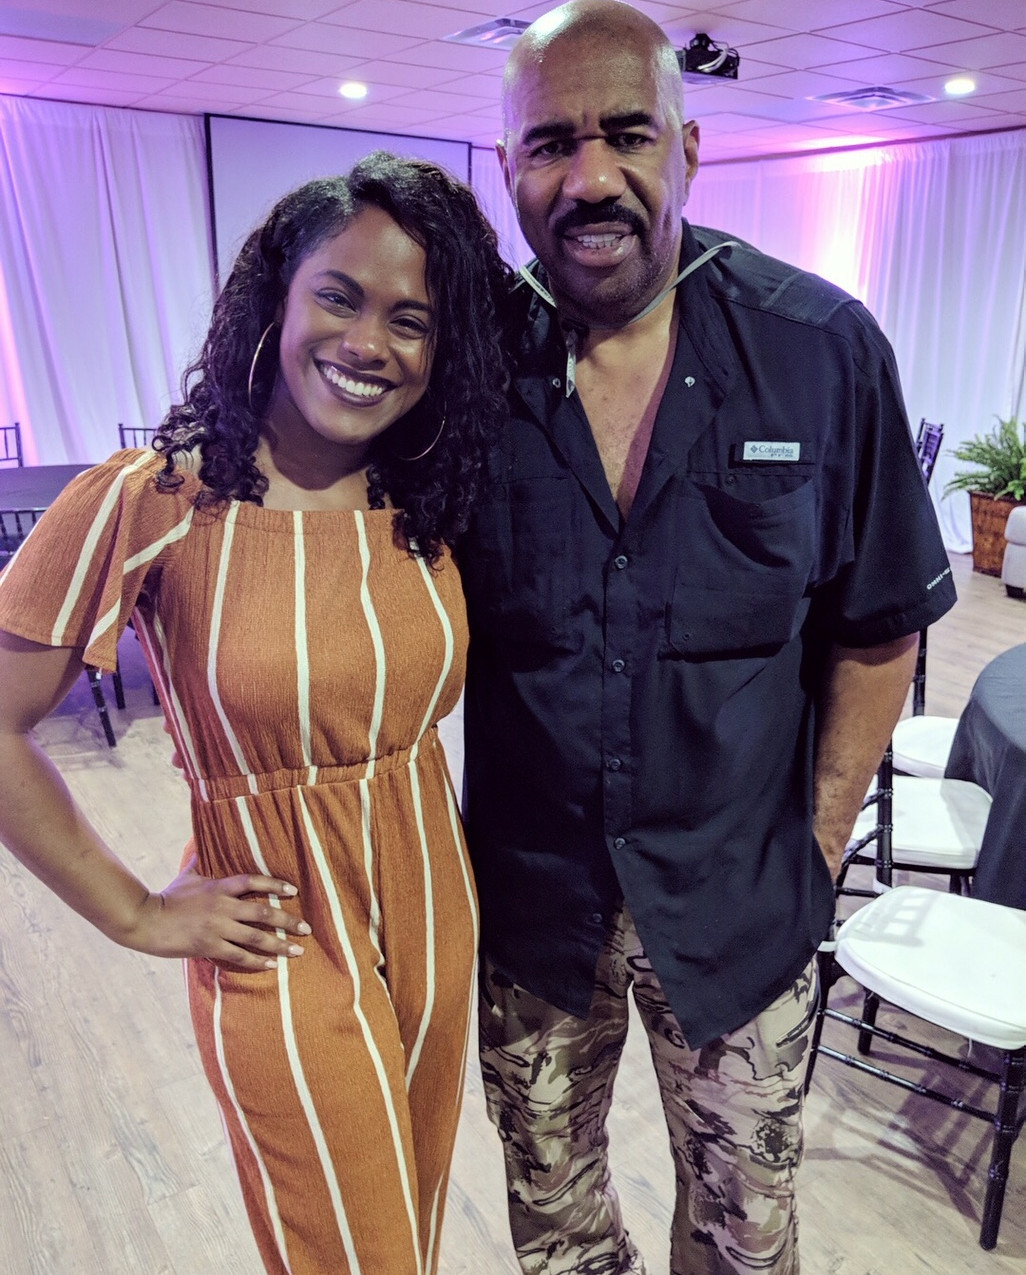 Daraiha Greene (Google) - Steve Harvey